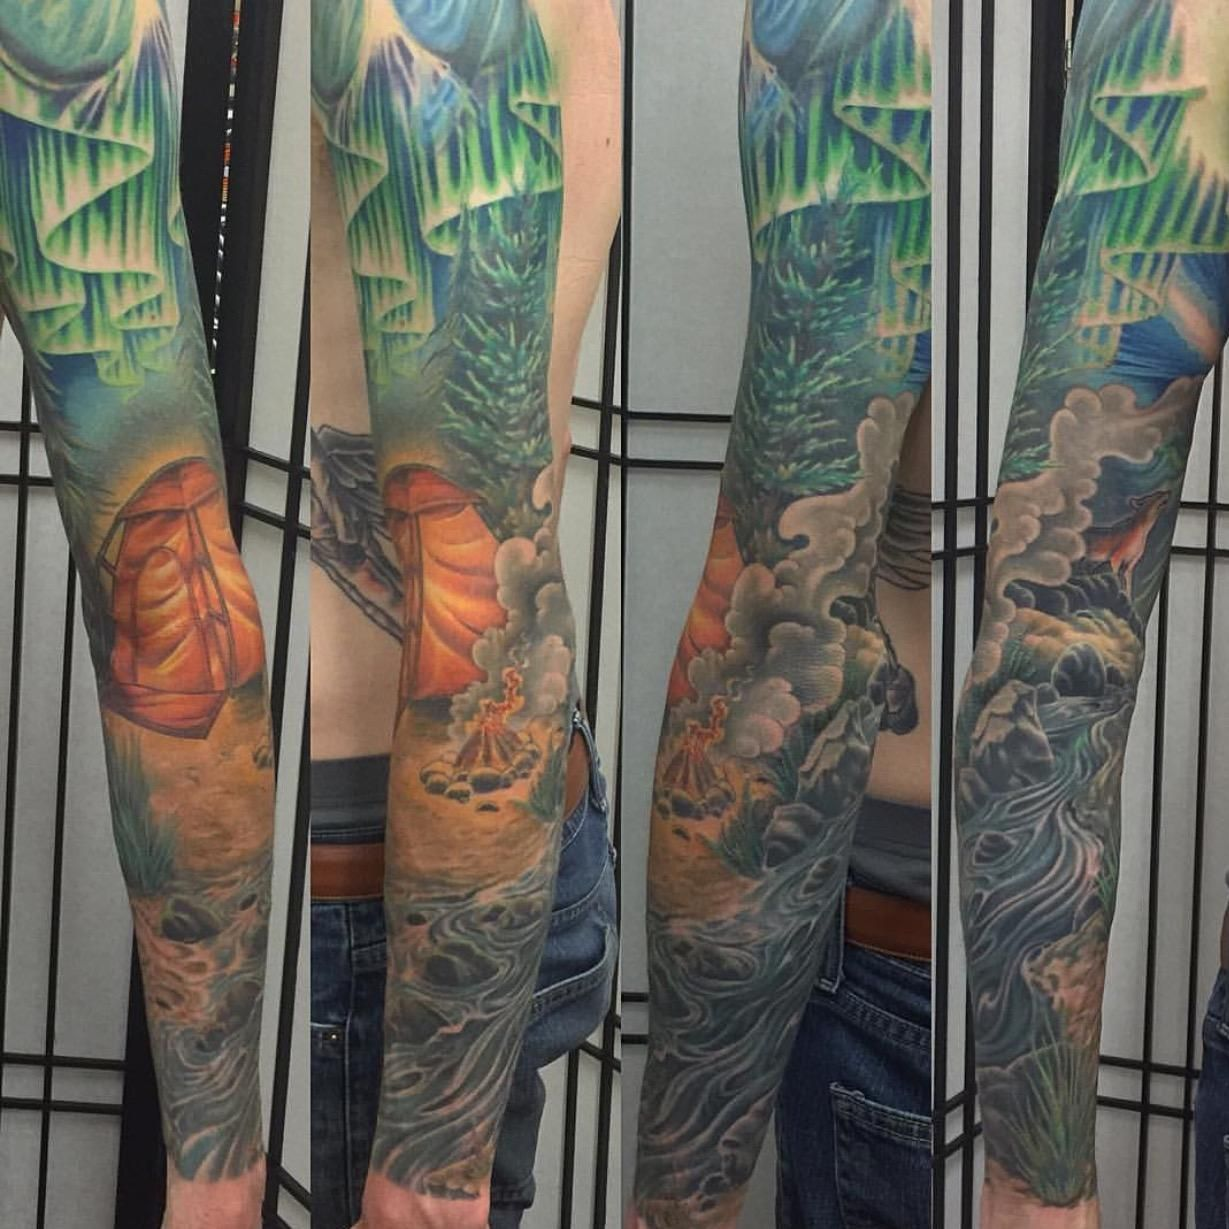 Just finished my sleeve. Camping themed. Hard to capture but very stoked on it. Done by Matt Tillman at Hold Fast Tattoo in Redwood City CA.